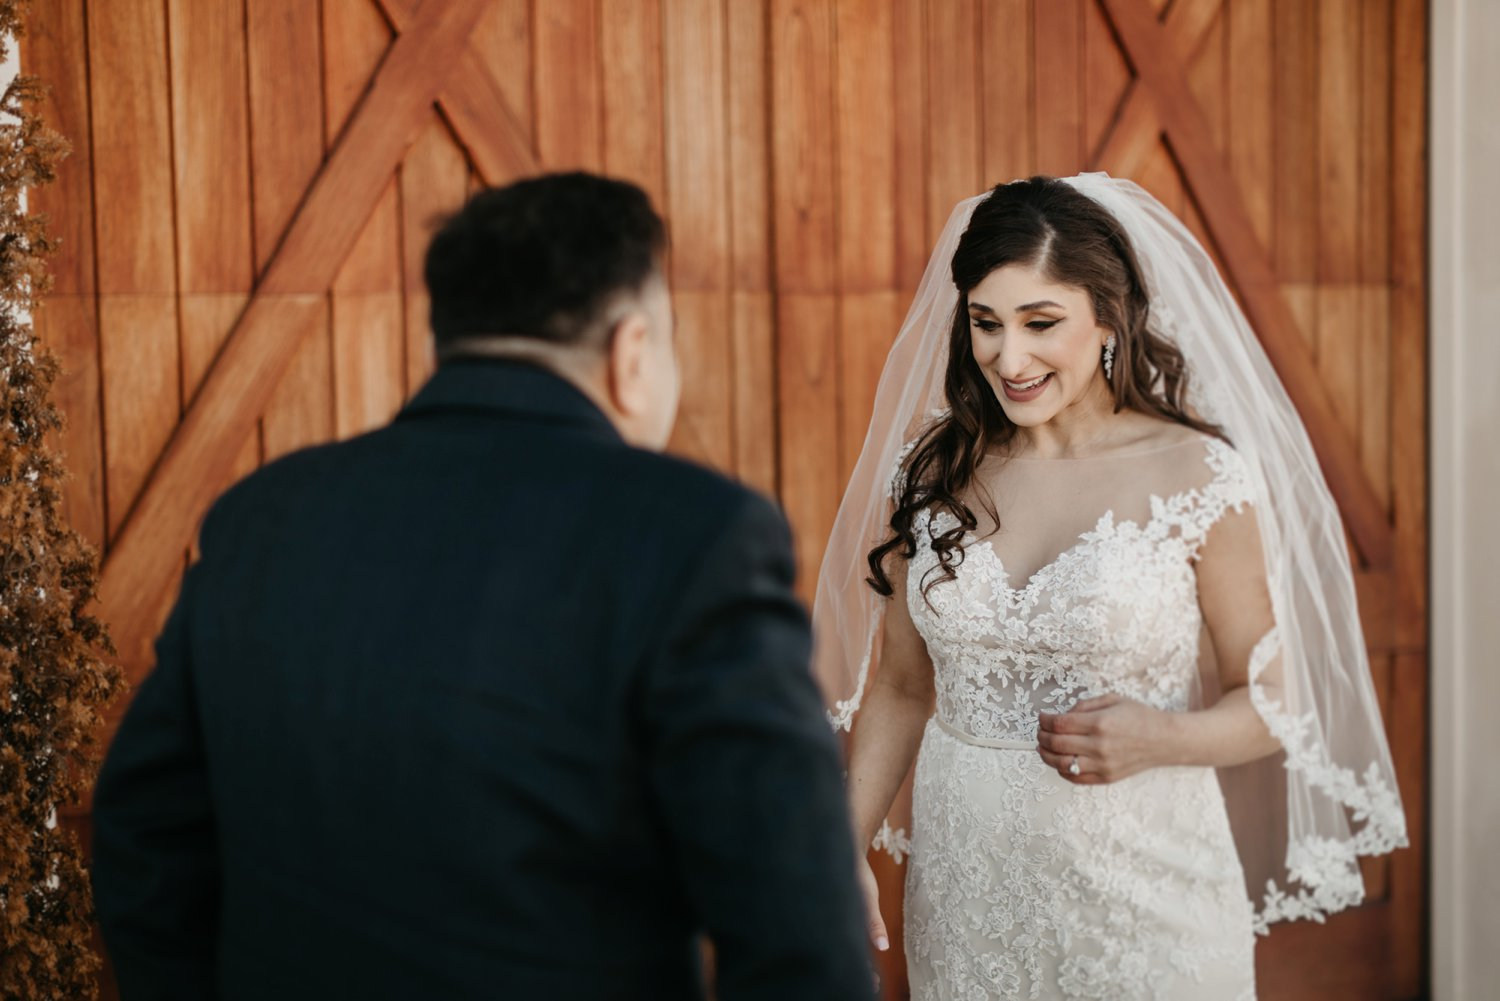 Thousand Acre Farms wedding Delaware wedding photographer | father daughter first look outdoor wedding